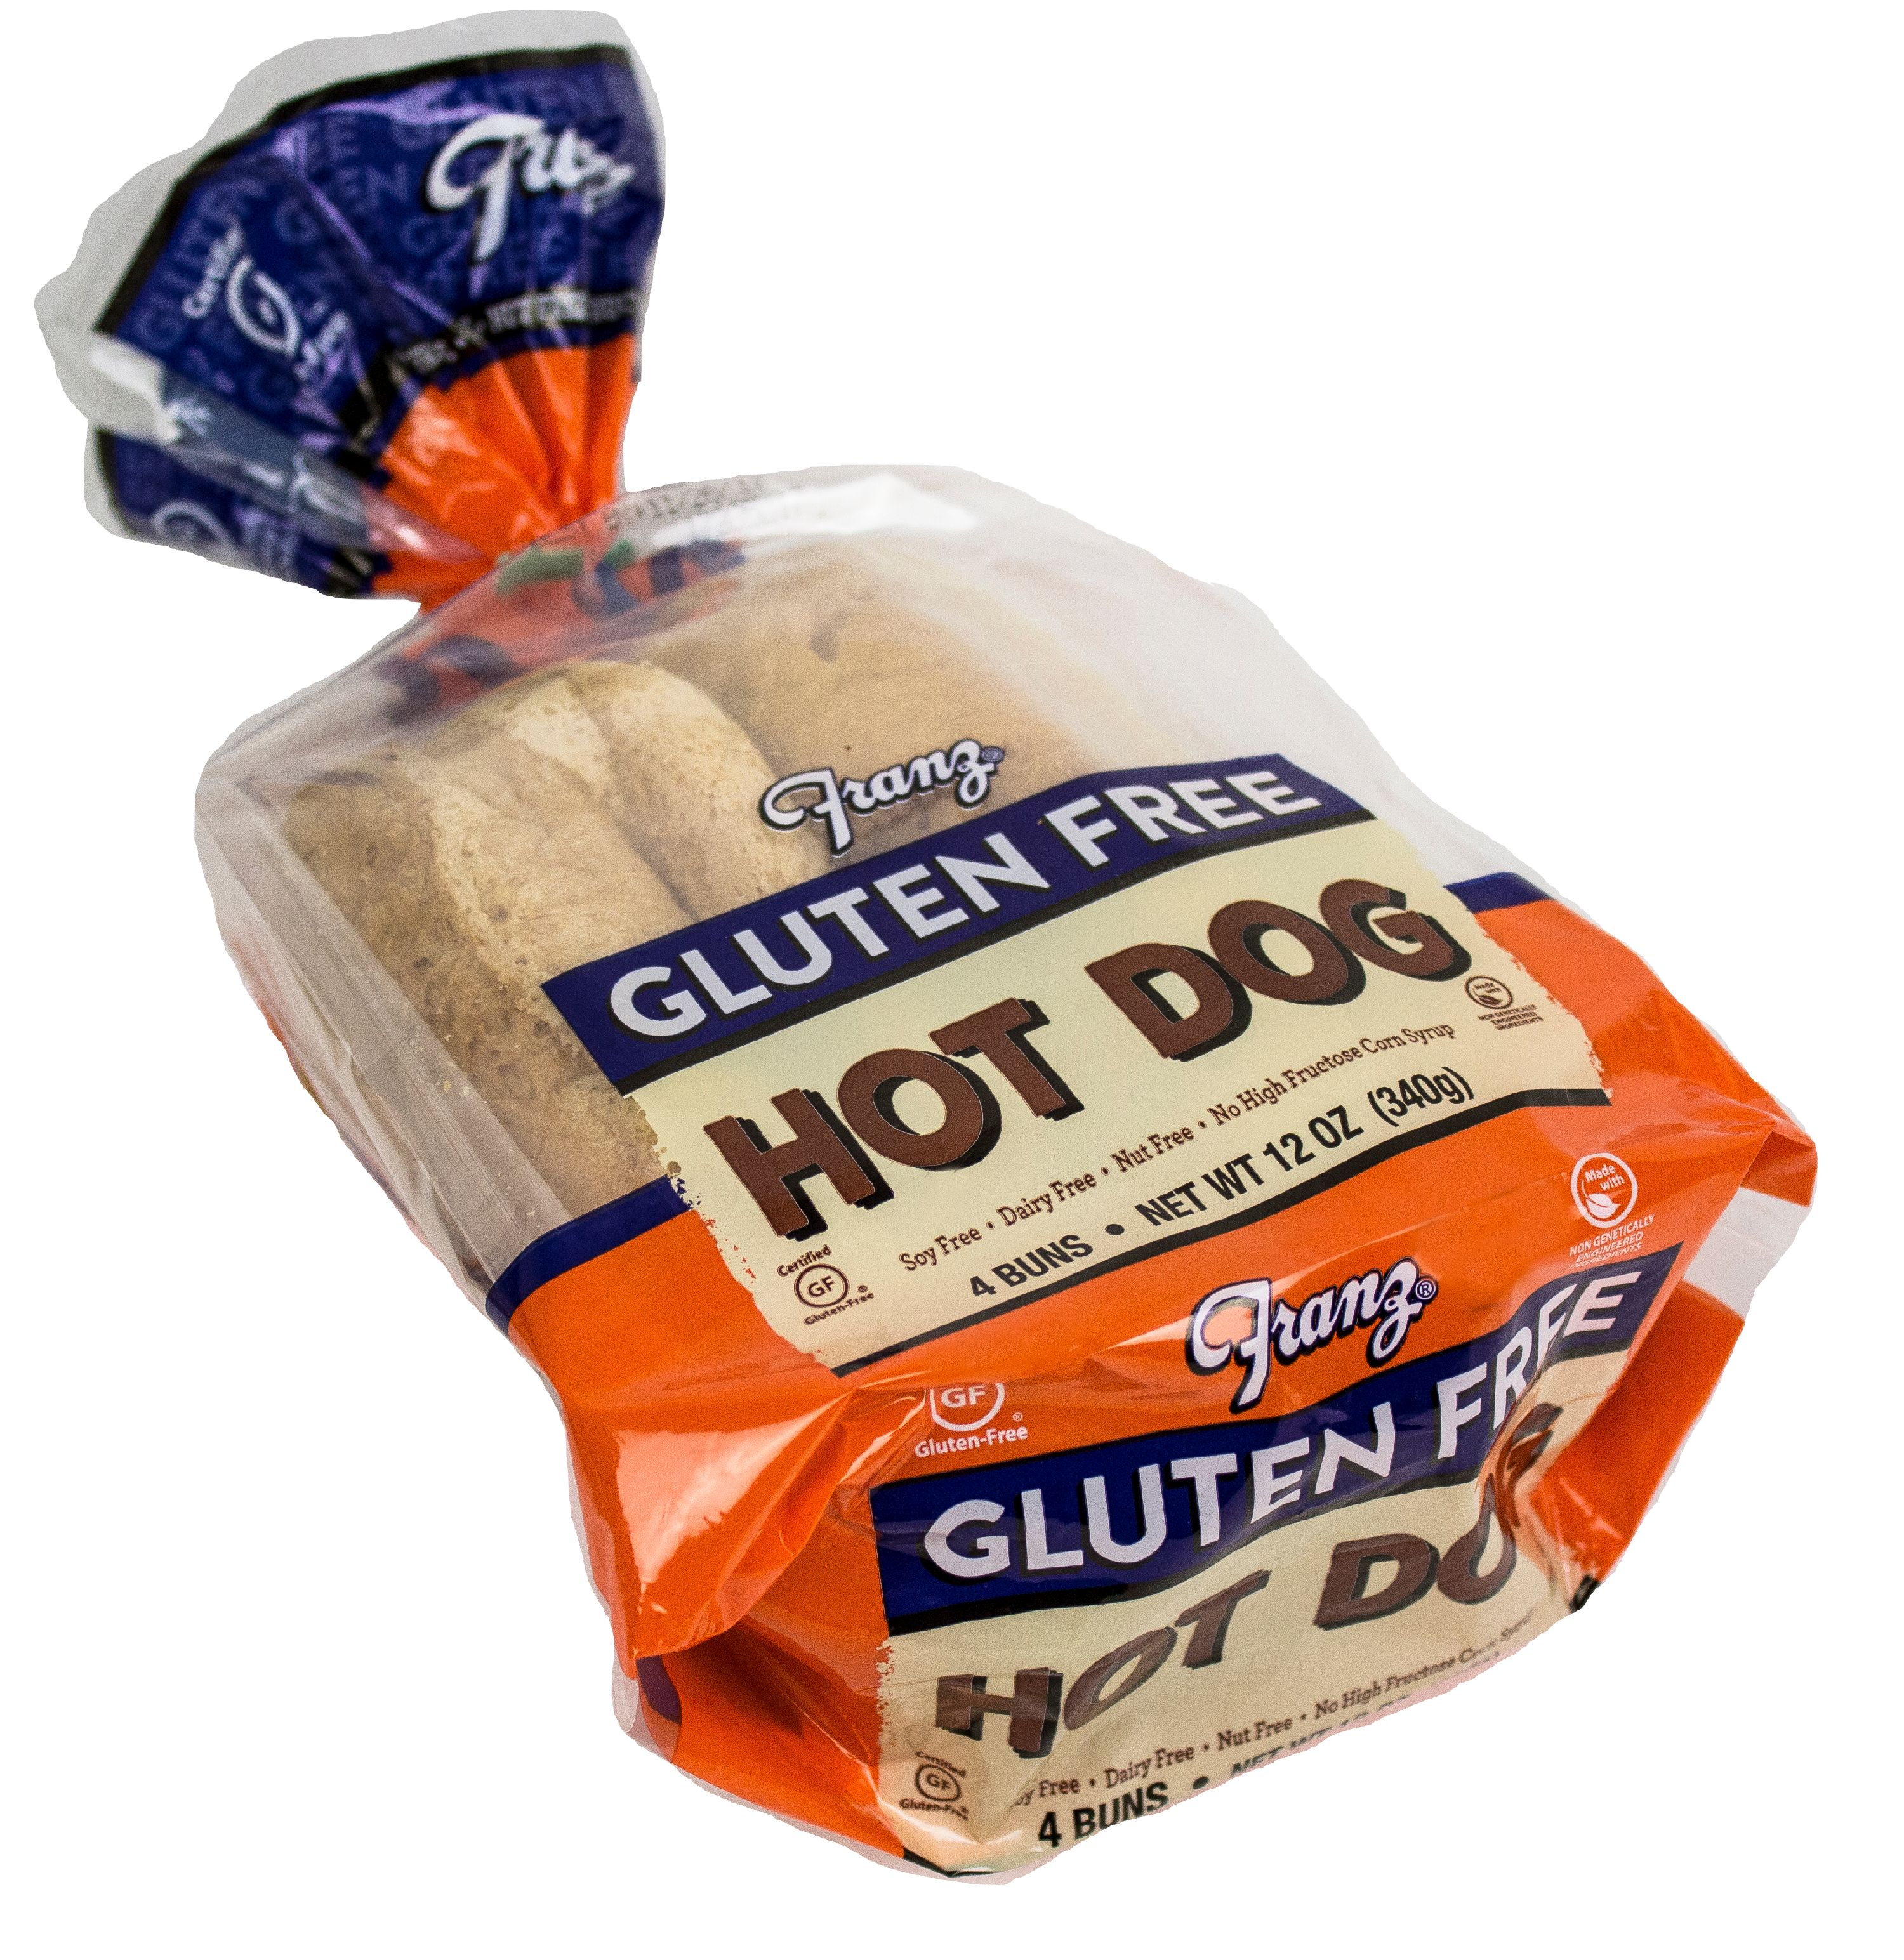 Bakehouse Franz Gluten Free Hot Dog Buns, 12 oz